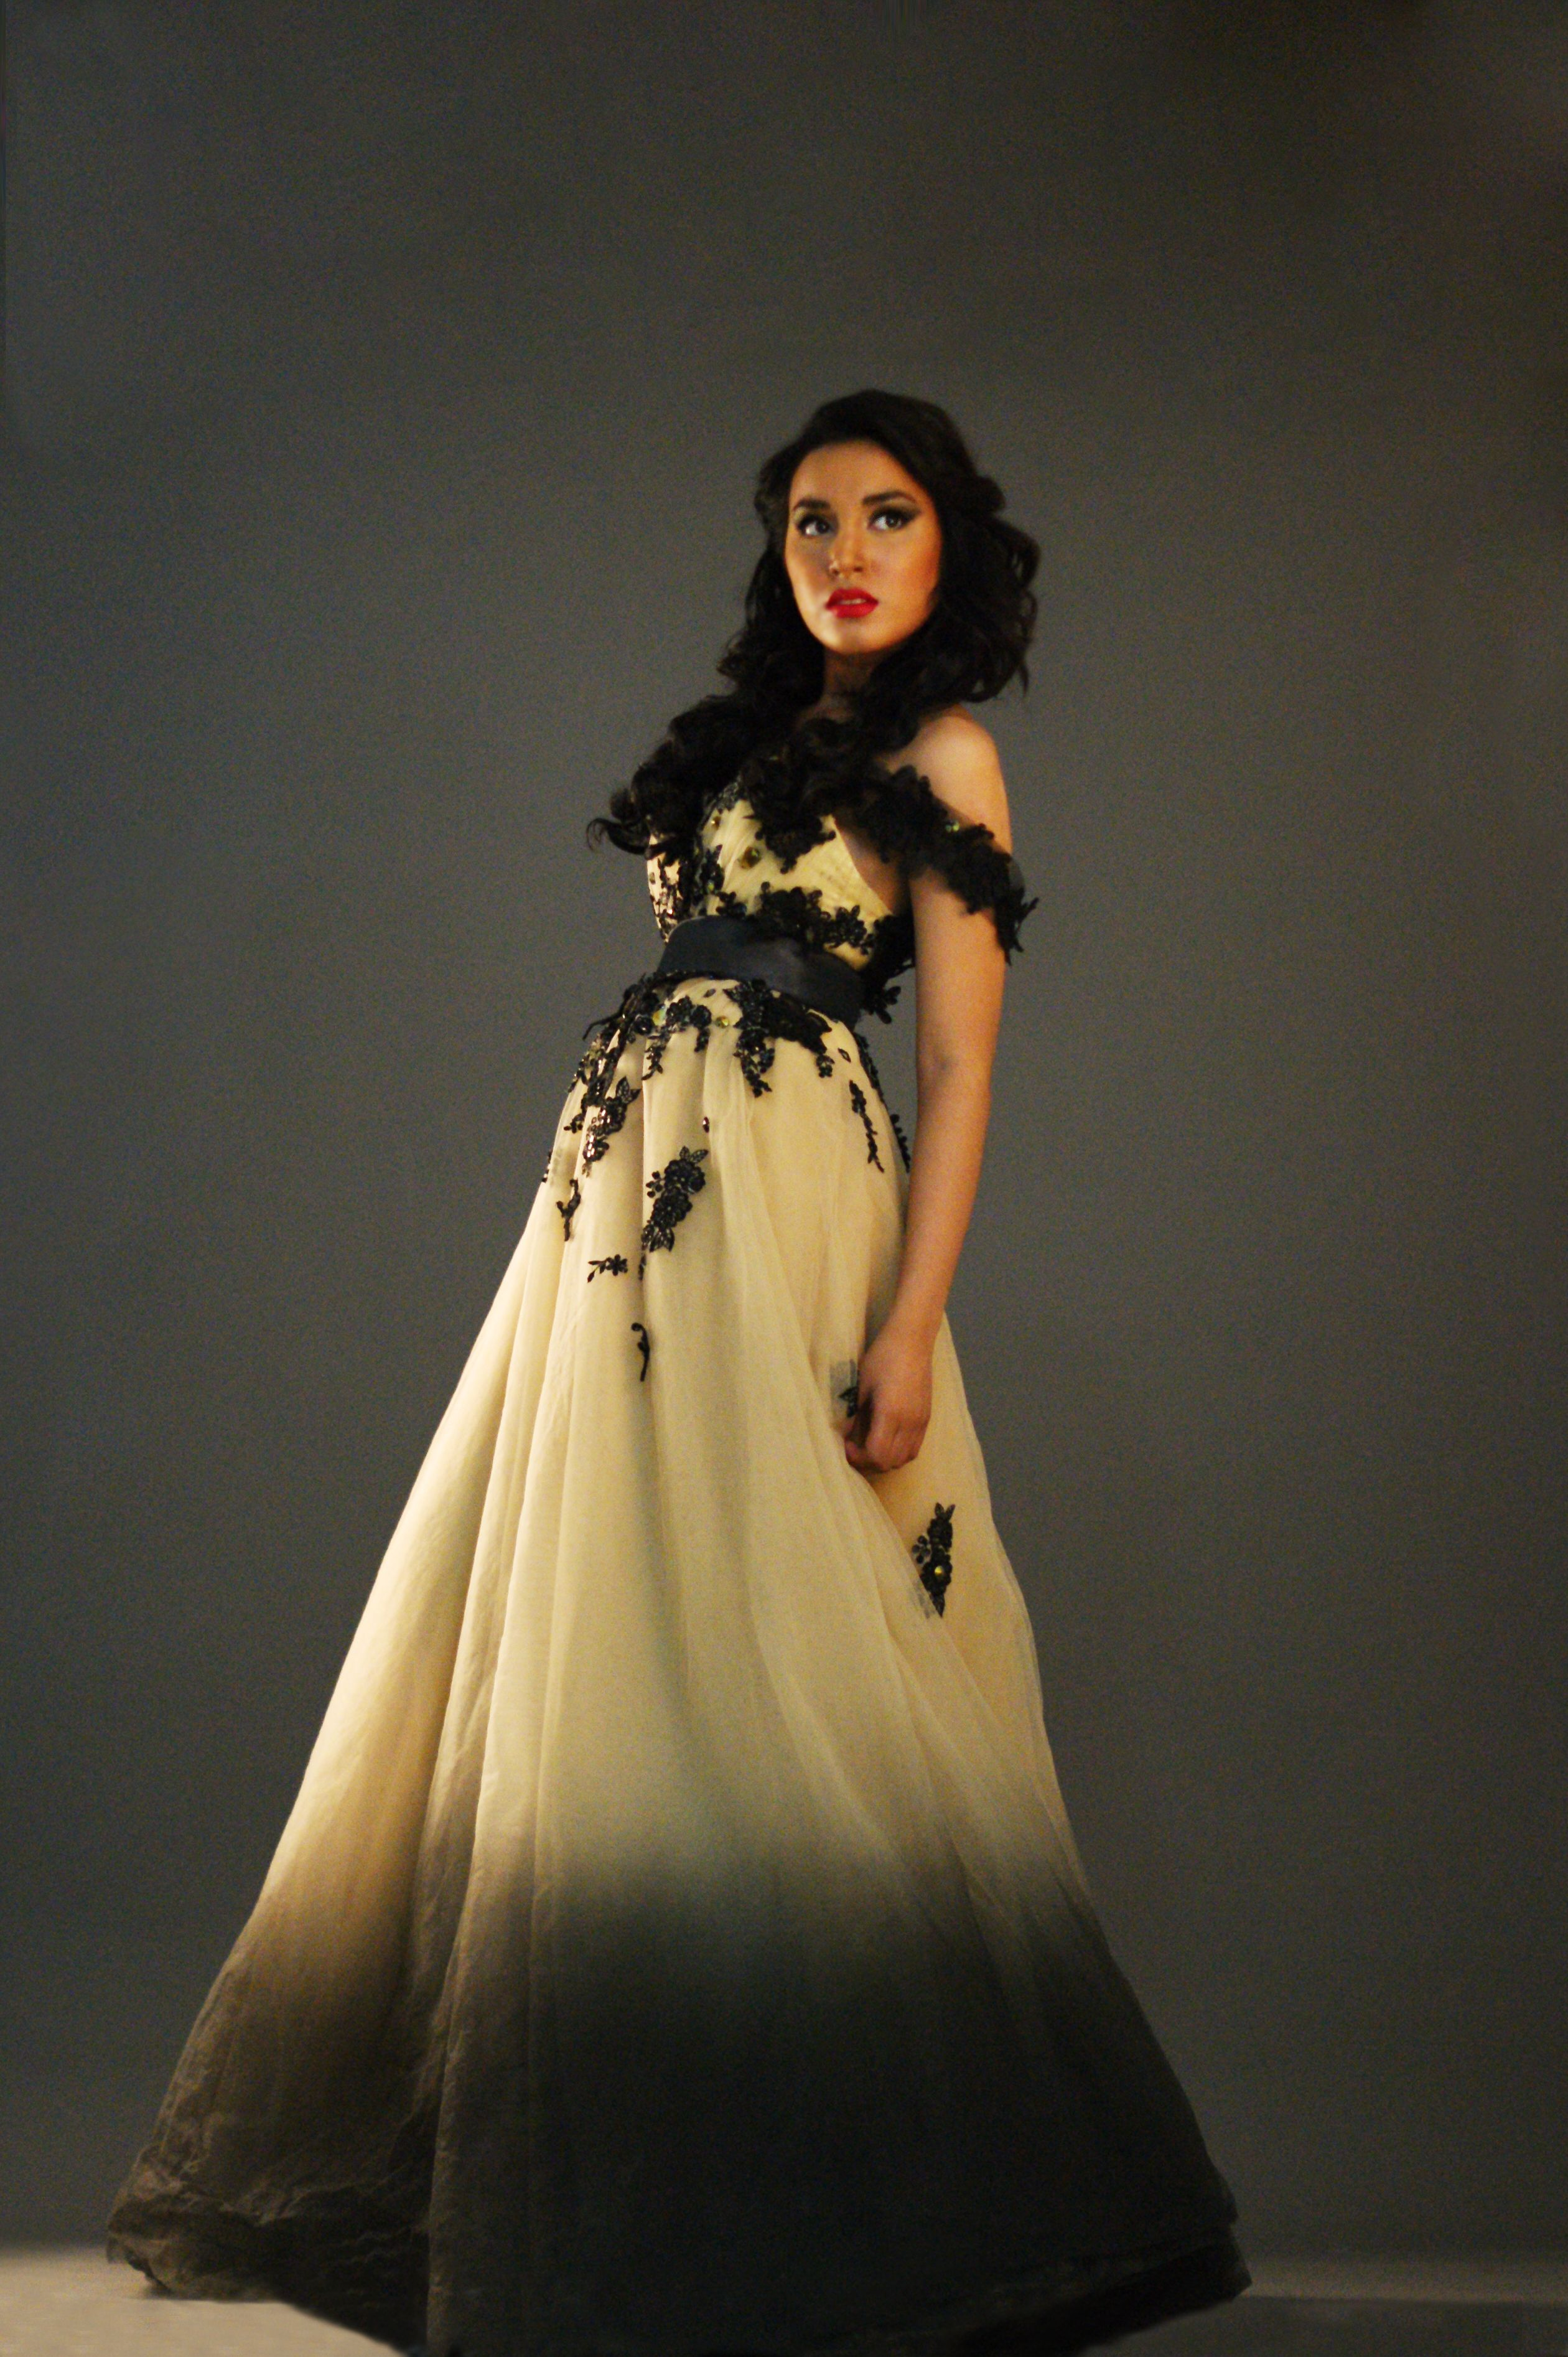 black and yellow ombre gown  3  151d79f0ce9e